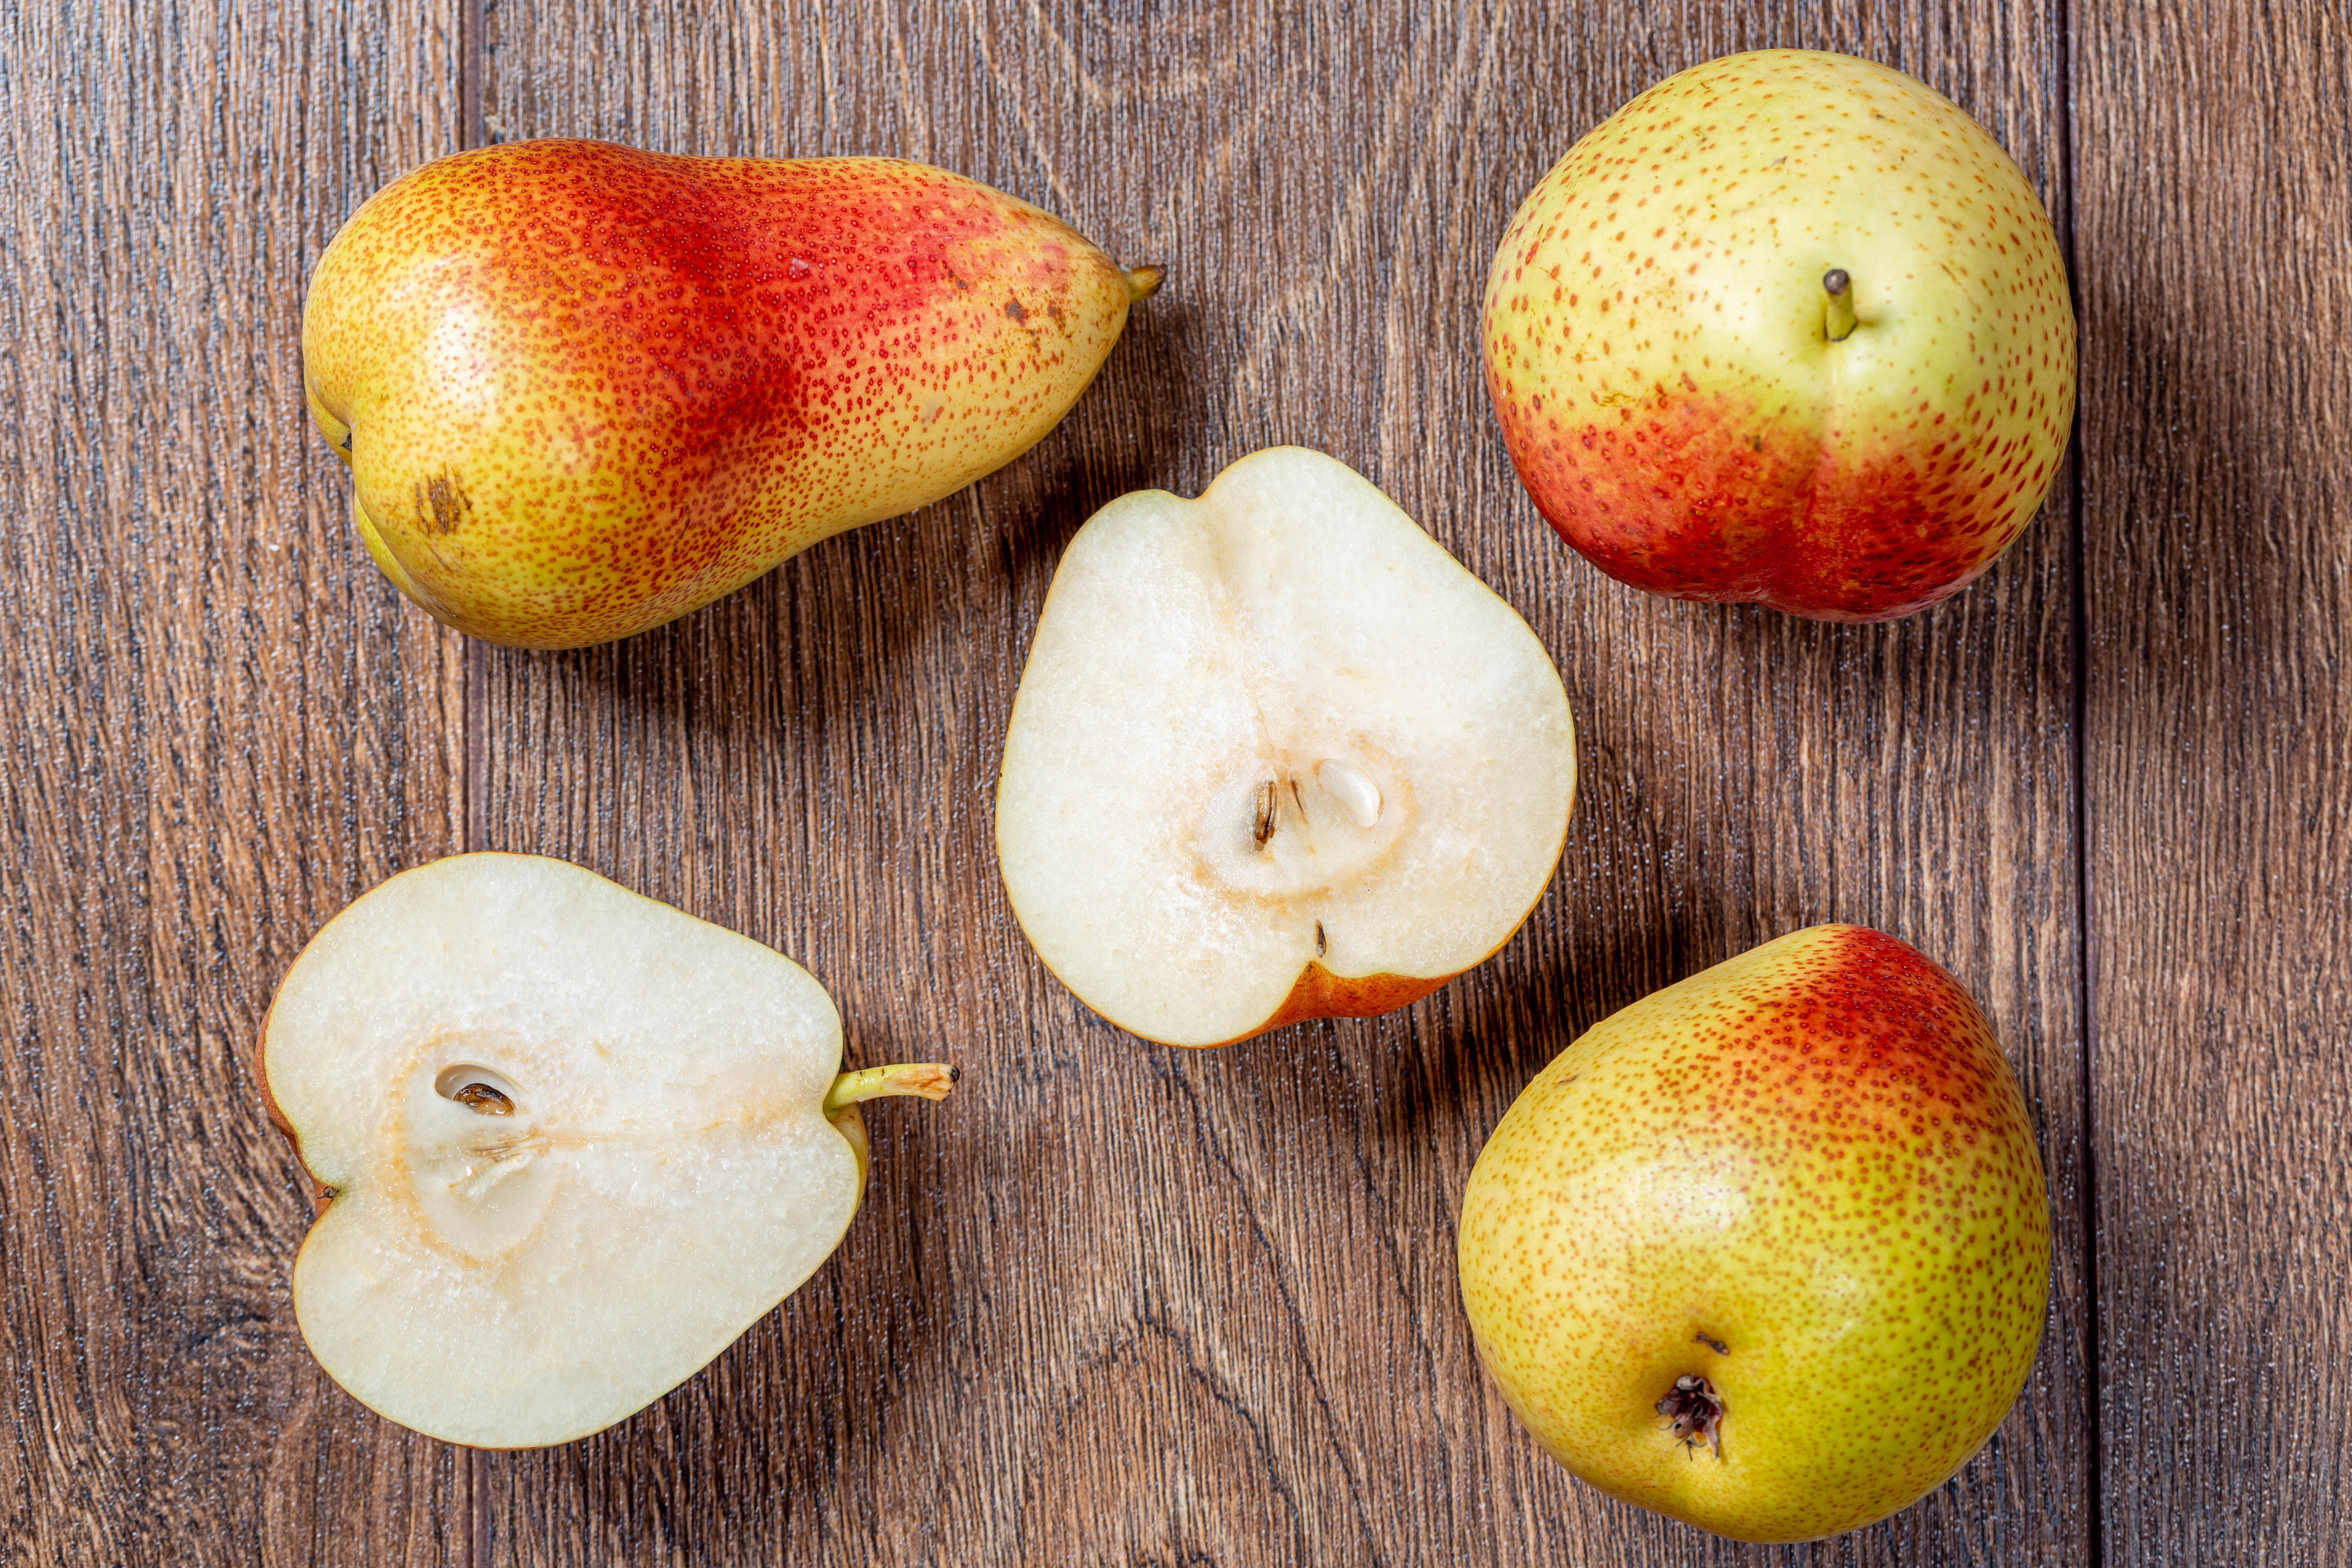 Picture Pears Food boards 4500x3000 Wood planks